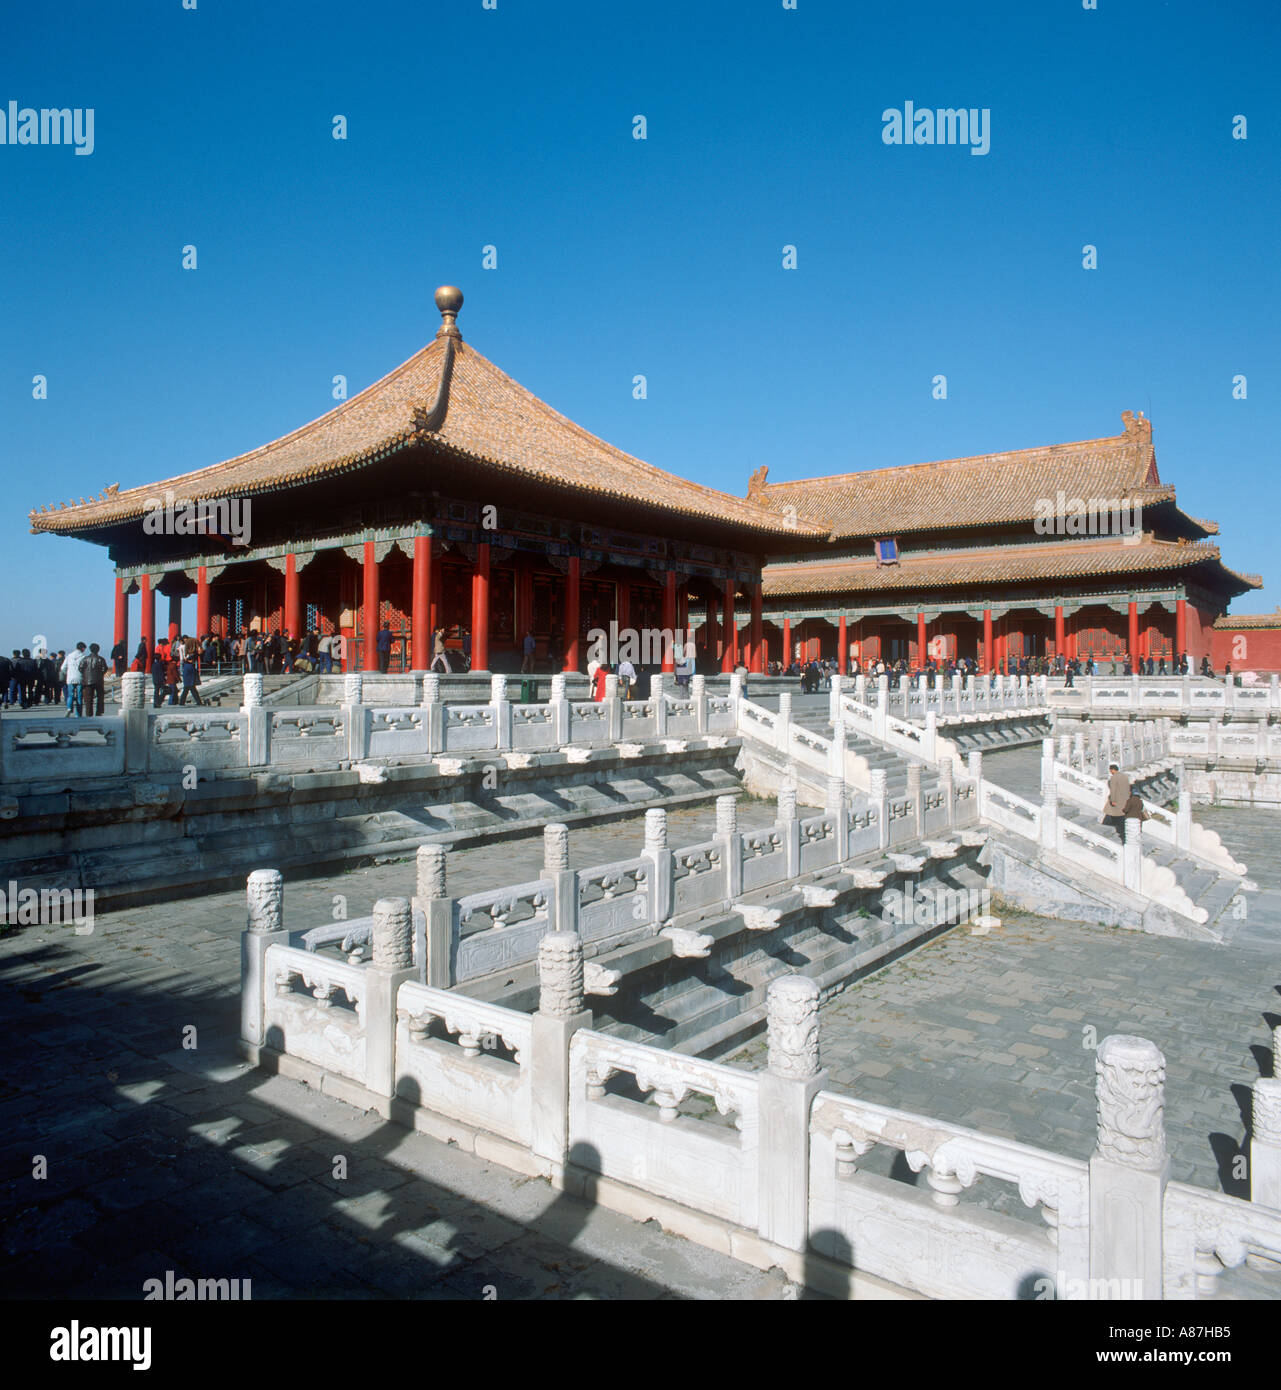 Bao He Dian Hall, Imperial Palace, Forbidden City, Beijing, China. Taken in 1987. - Stock Image